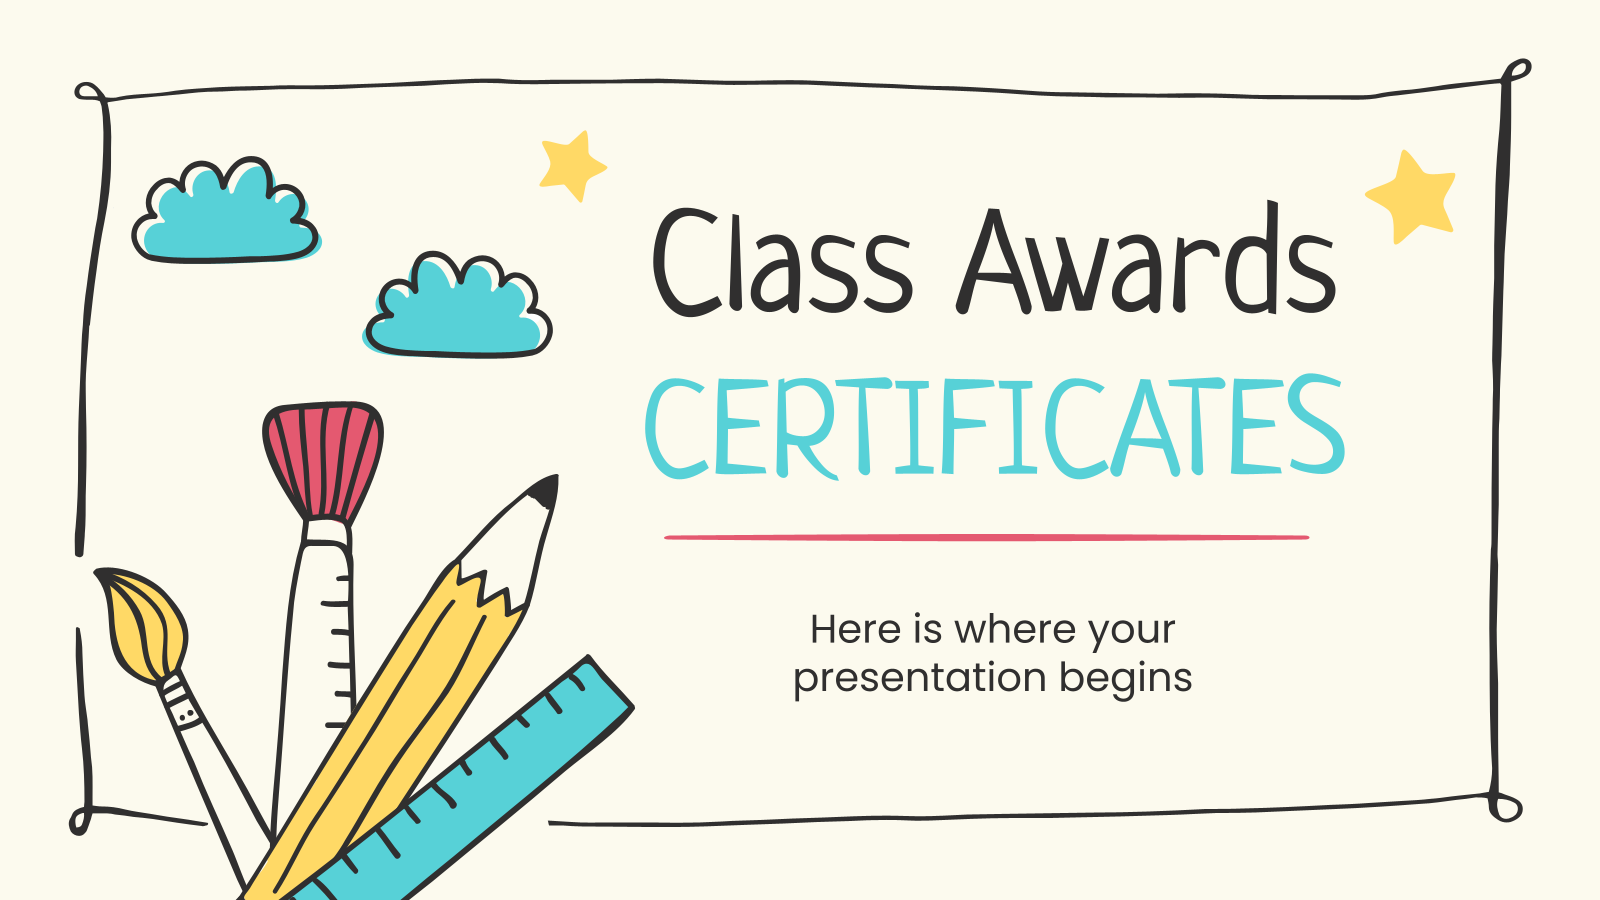 Class Awards Certificates presentation template